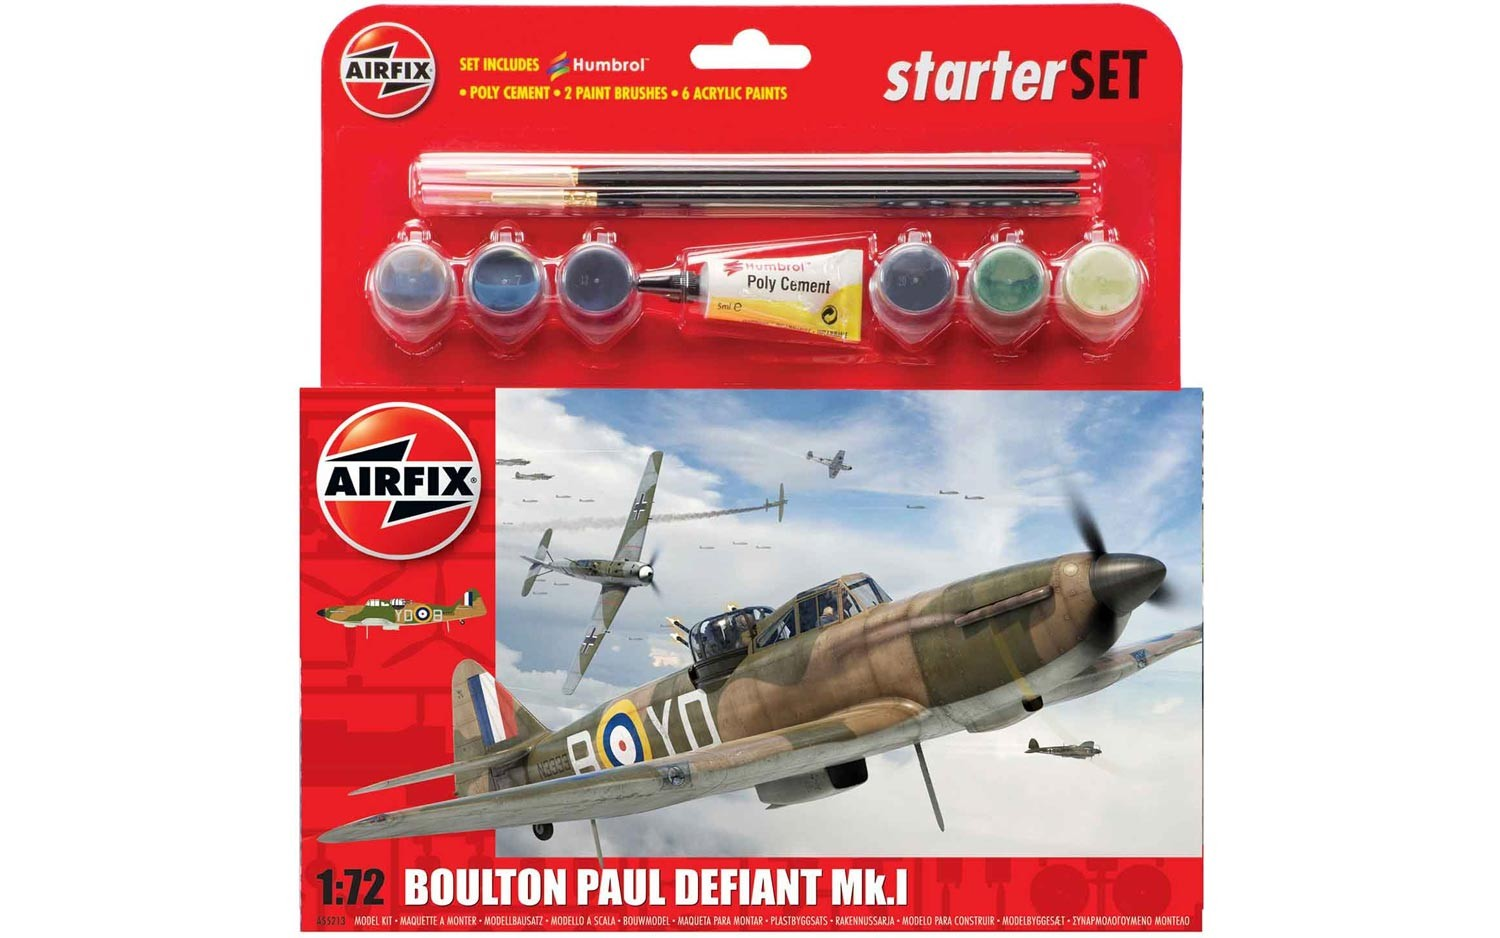 Airfix Boulton Paul Defiant Mk.1 Starter Set 1:72nd Scale.